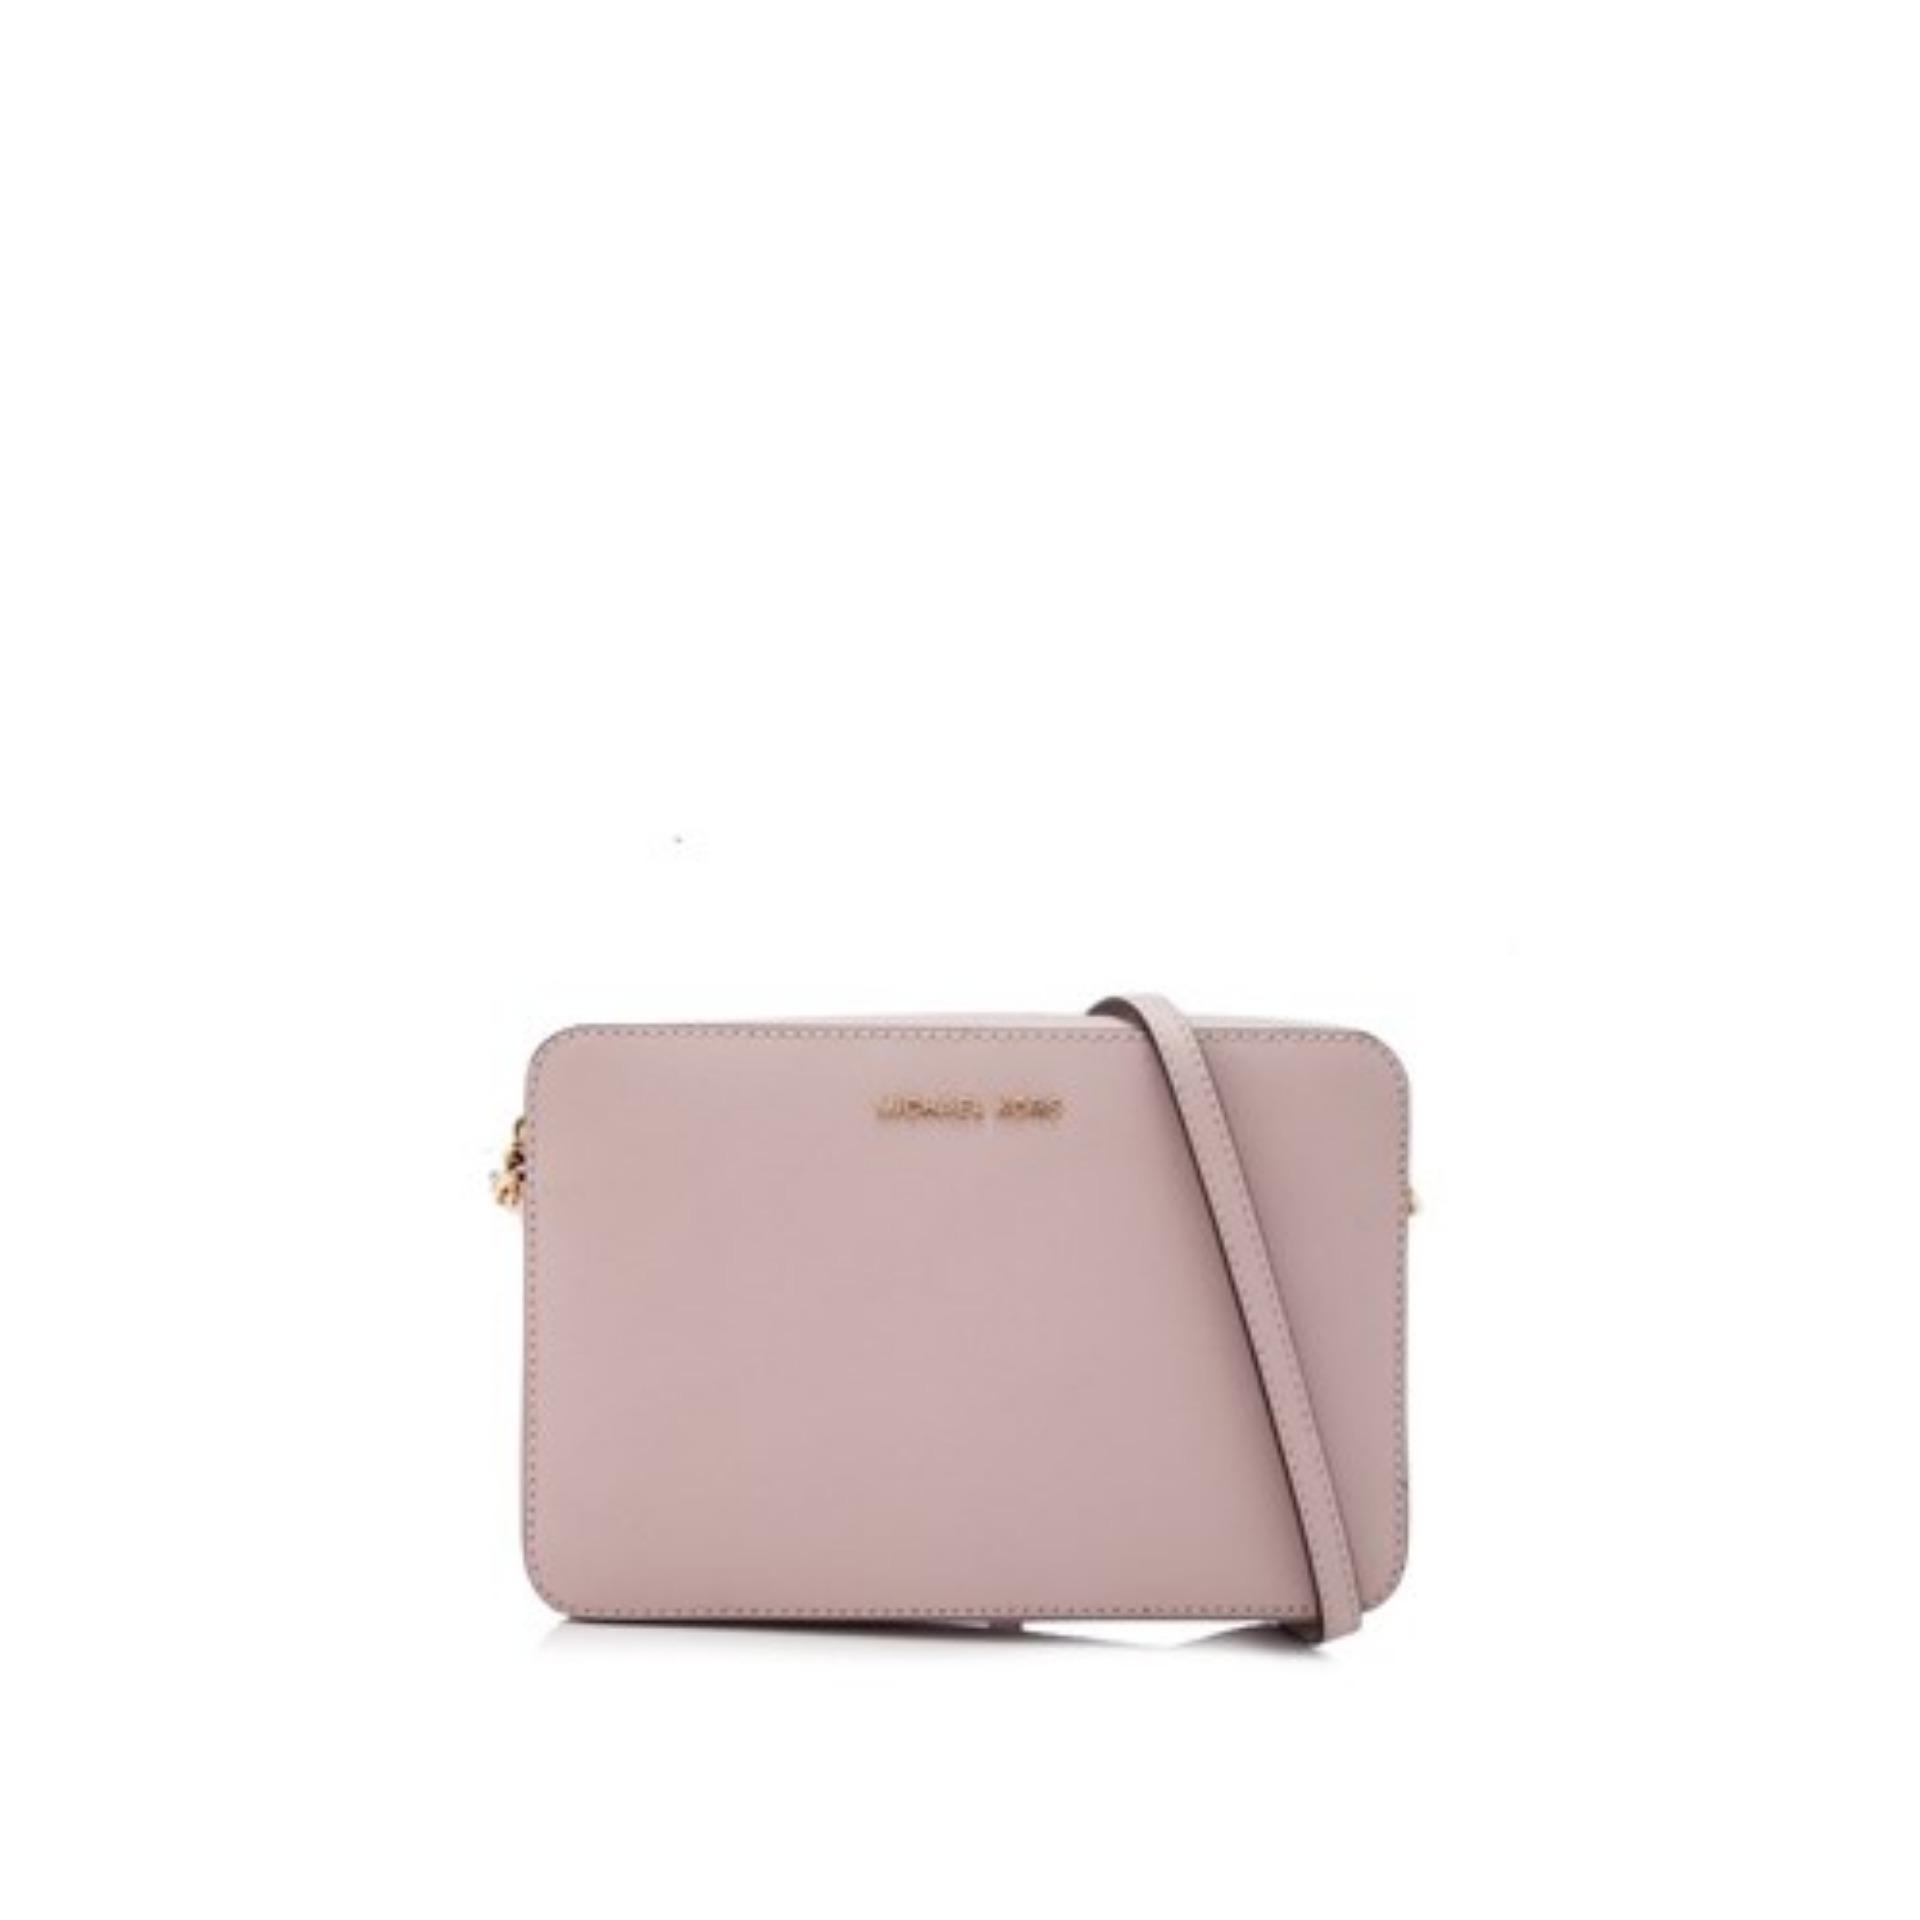 d945fff4f90e Michael Kors Jet Set East West Large Crossbody Bag (Soft Pink) #  32S4GTVC3LSOFTPINK